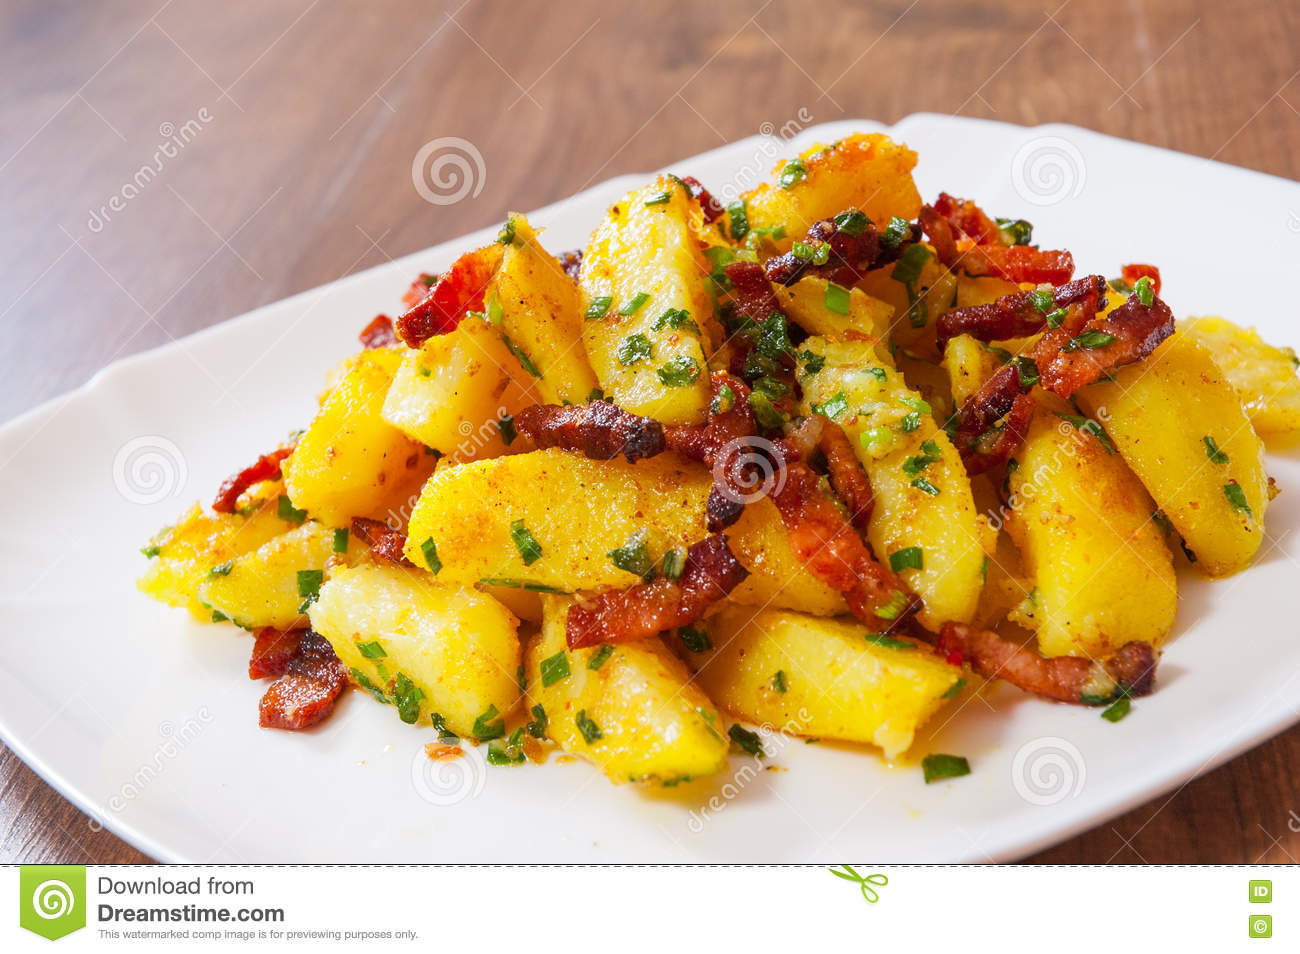 Patate fritte con bacon